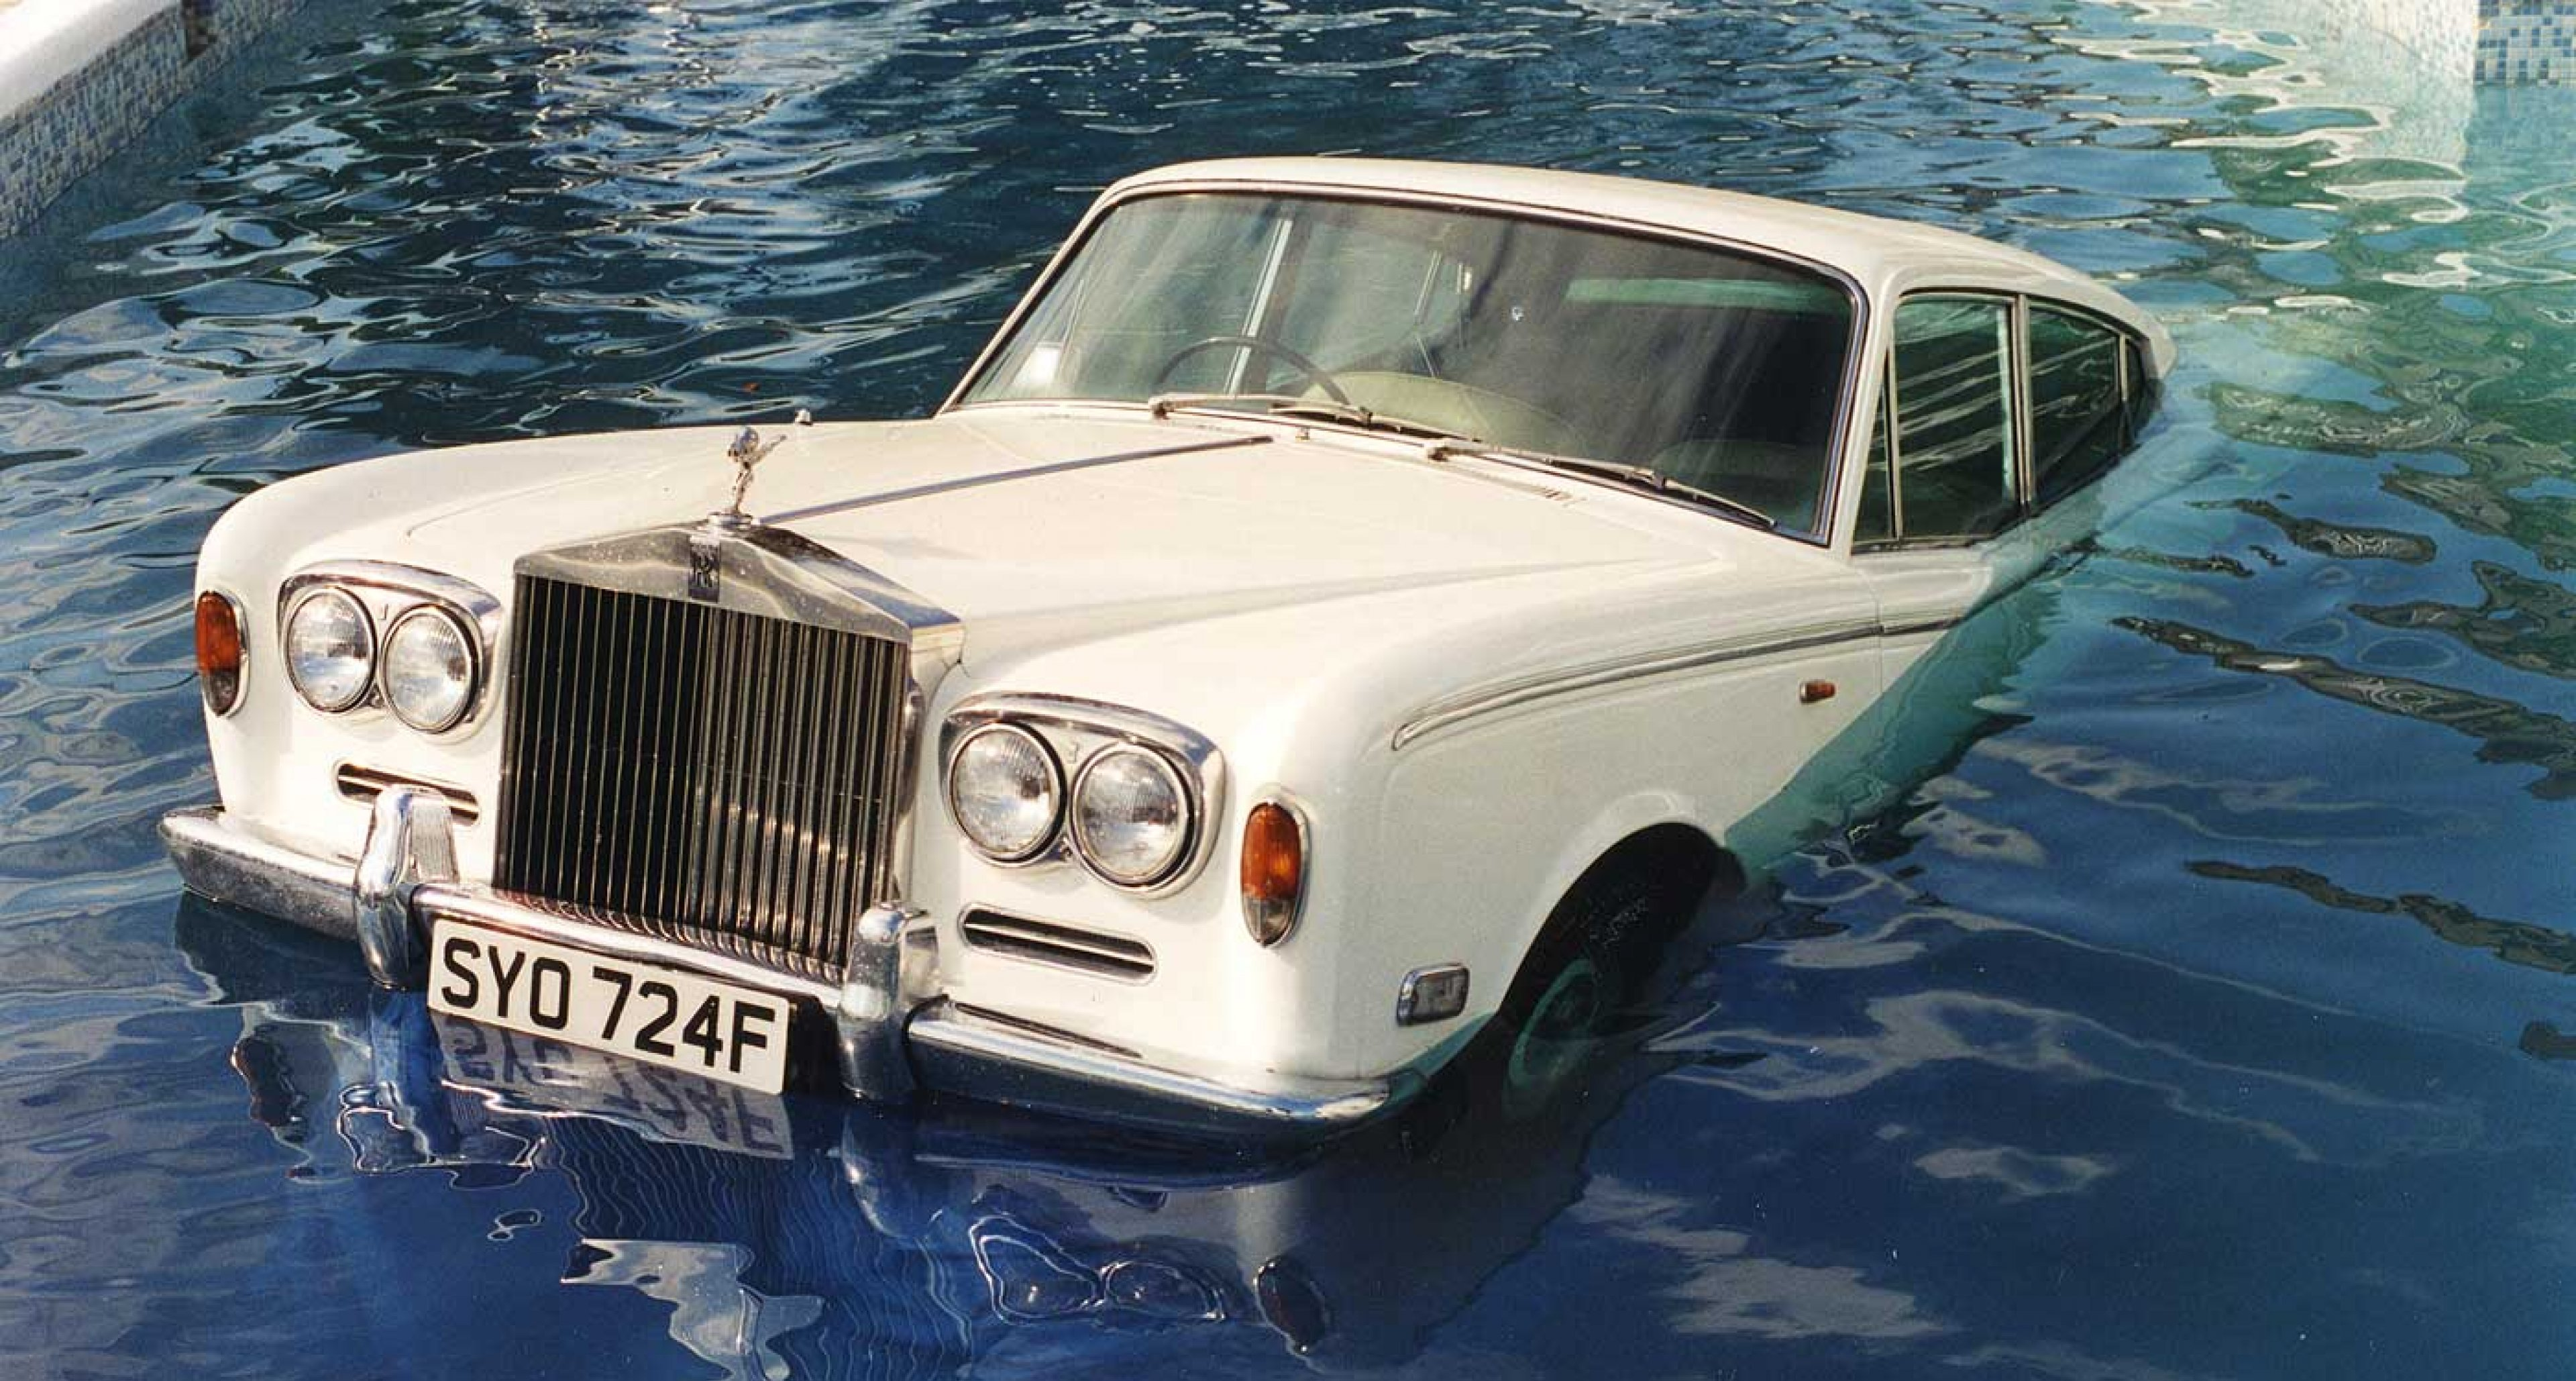 The Rolls-Royce in its final resting place, complete with Beatles-inspired numberplate